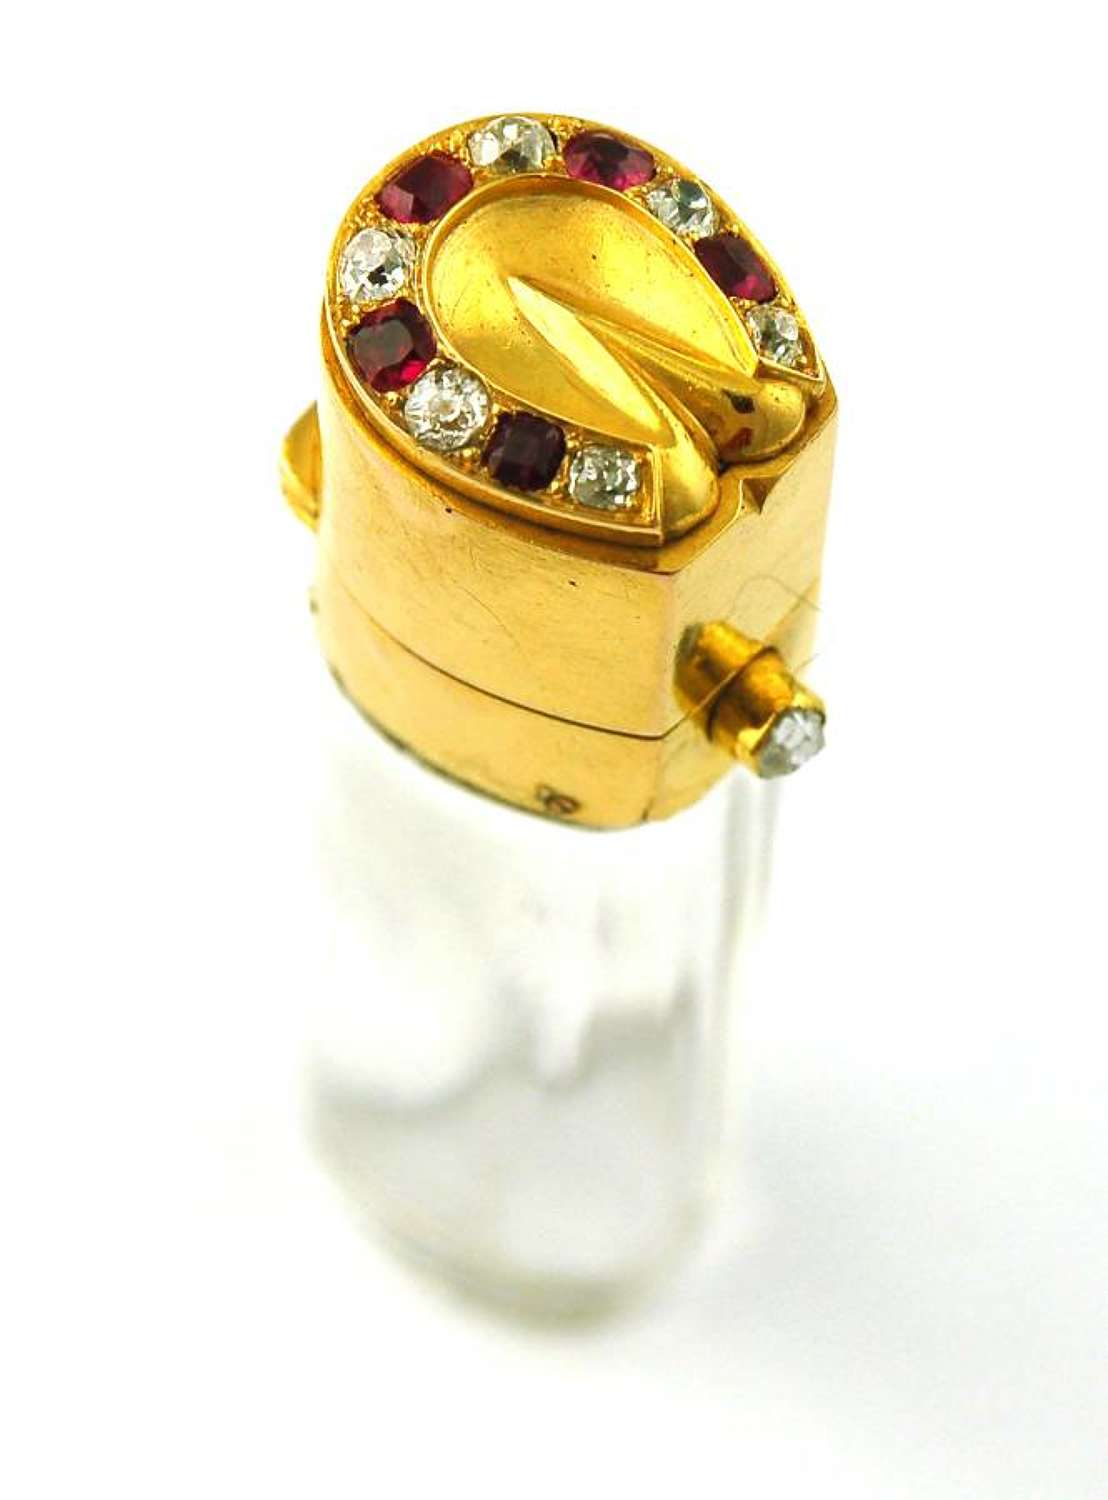 Gold and Jewelled 'Horseshoe' Scent